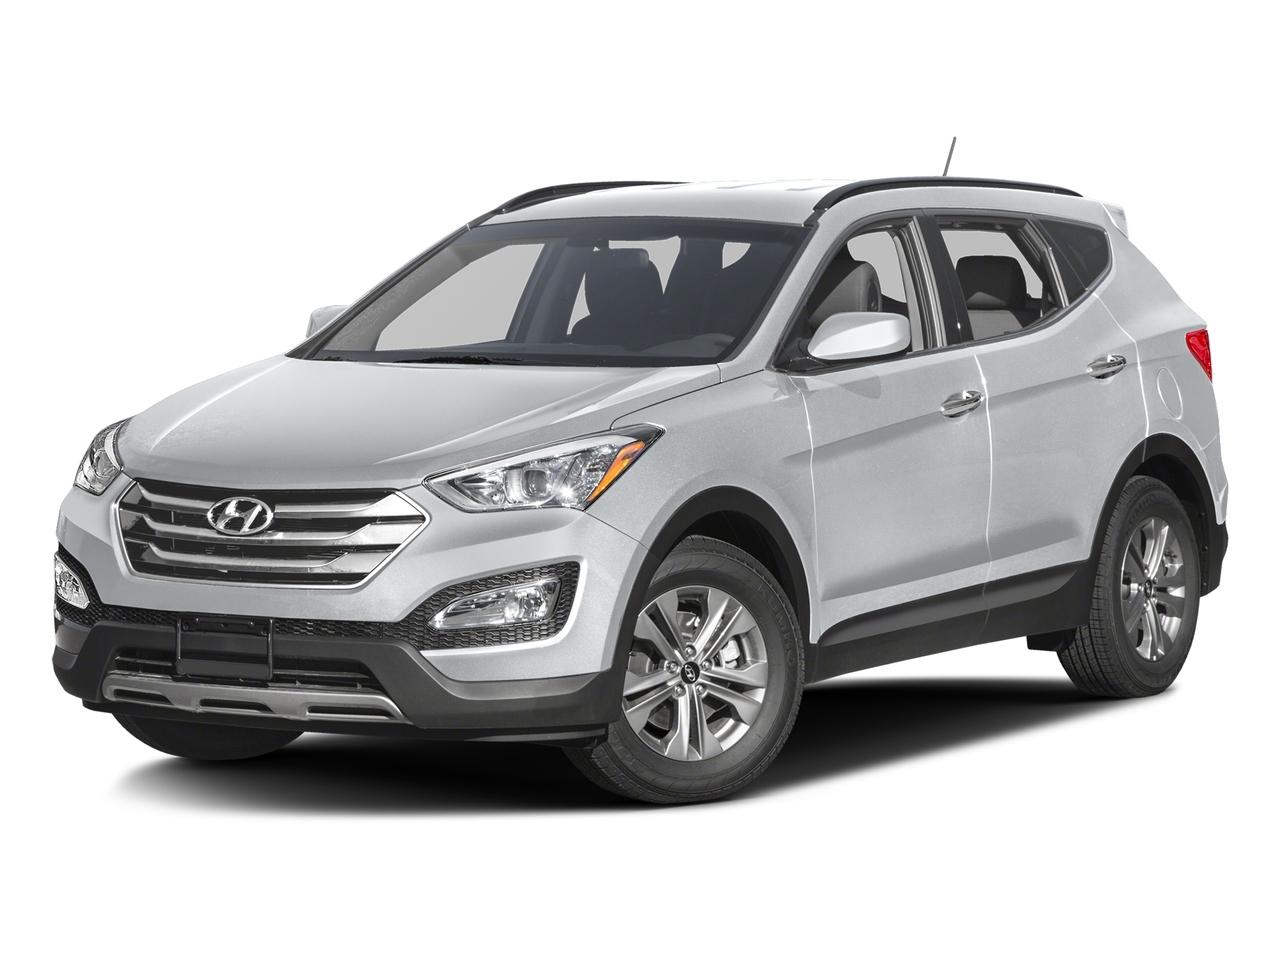 2016 Hyundai Santa Fe Sport Vehicle Photo in Manassas, VA 20109